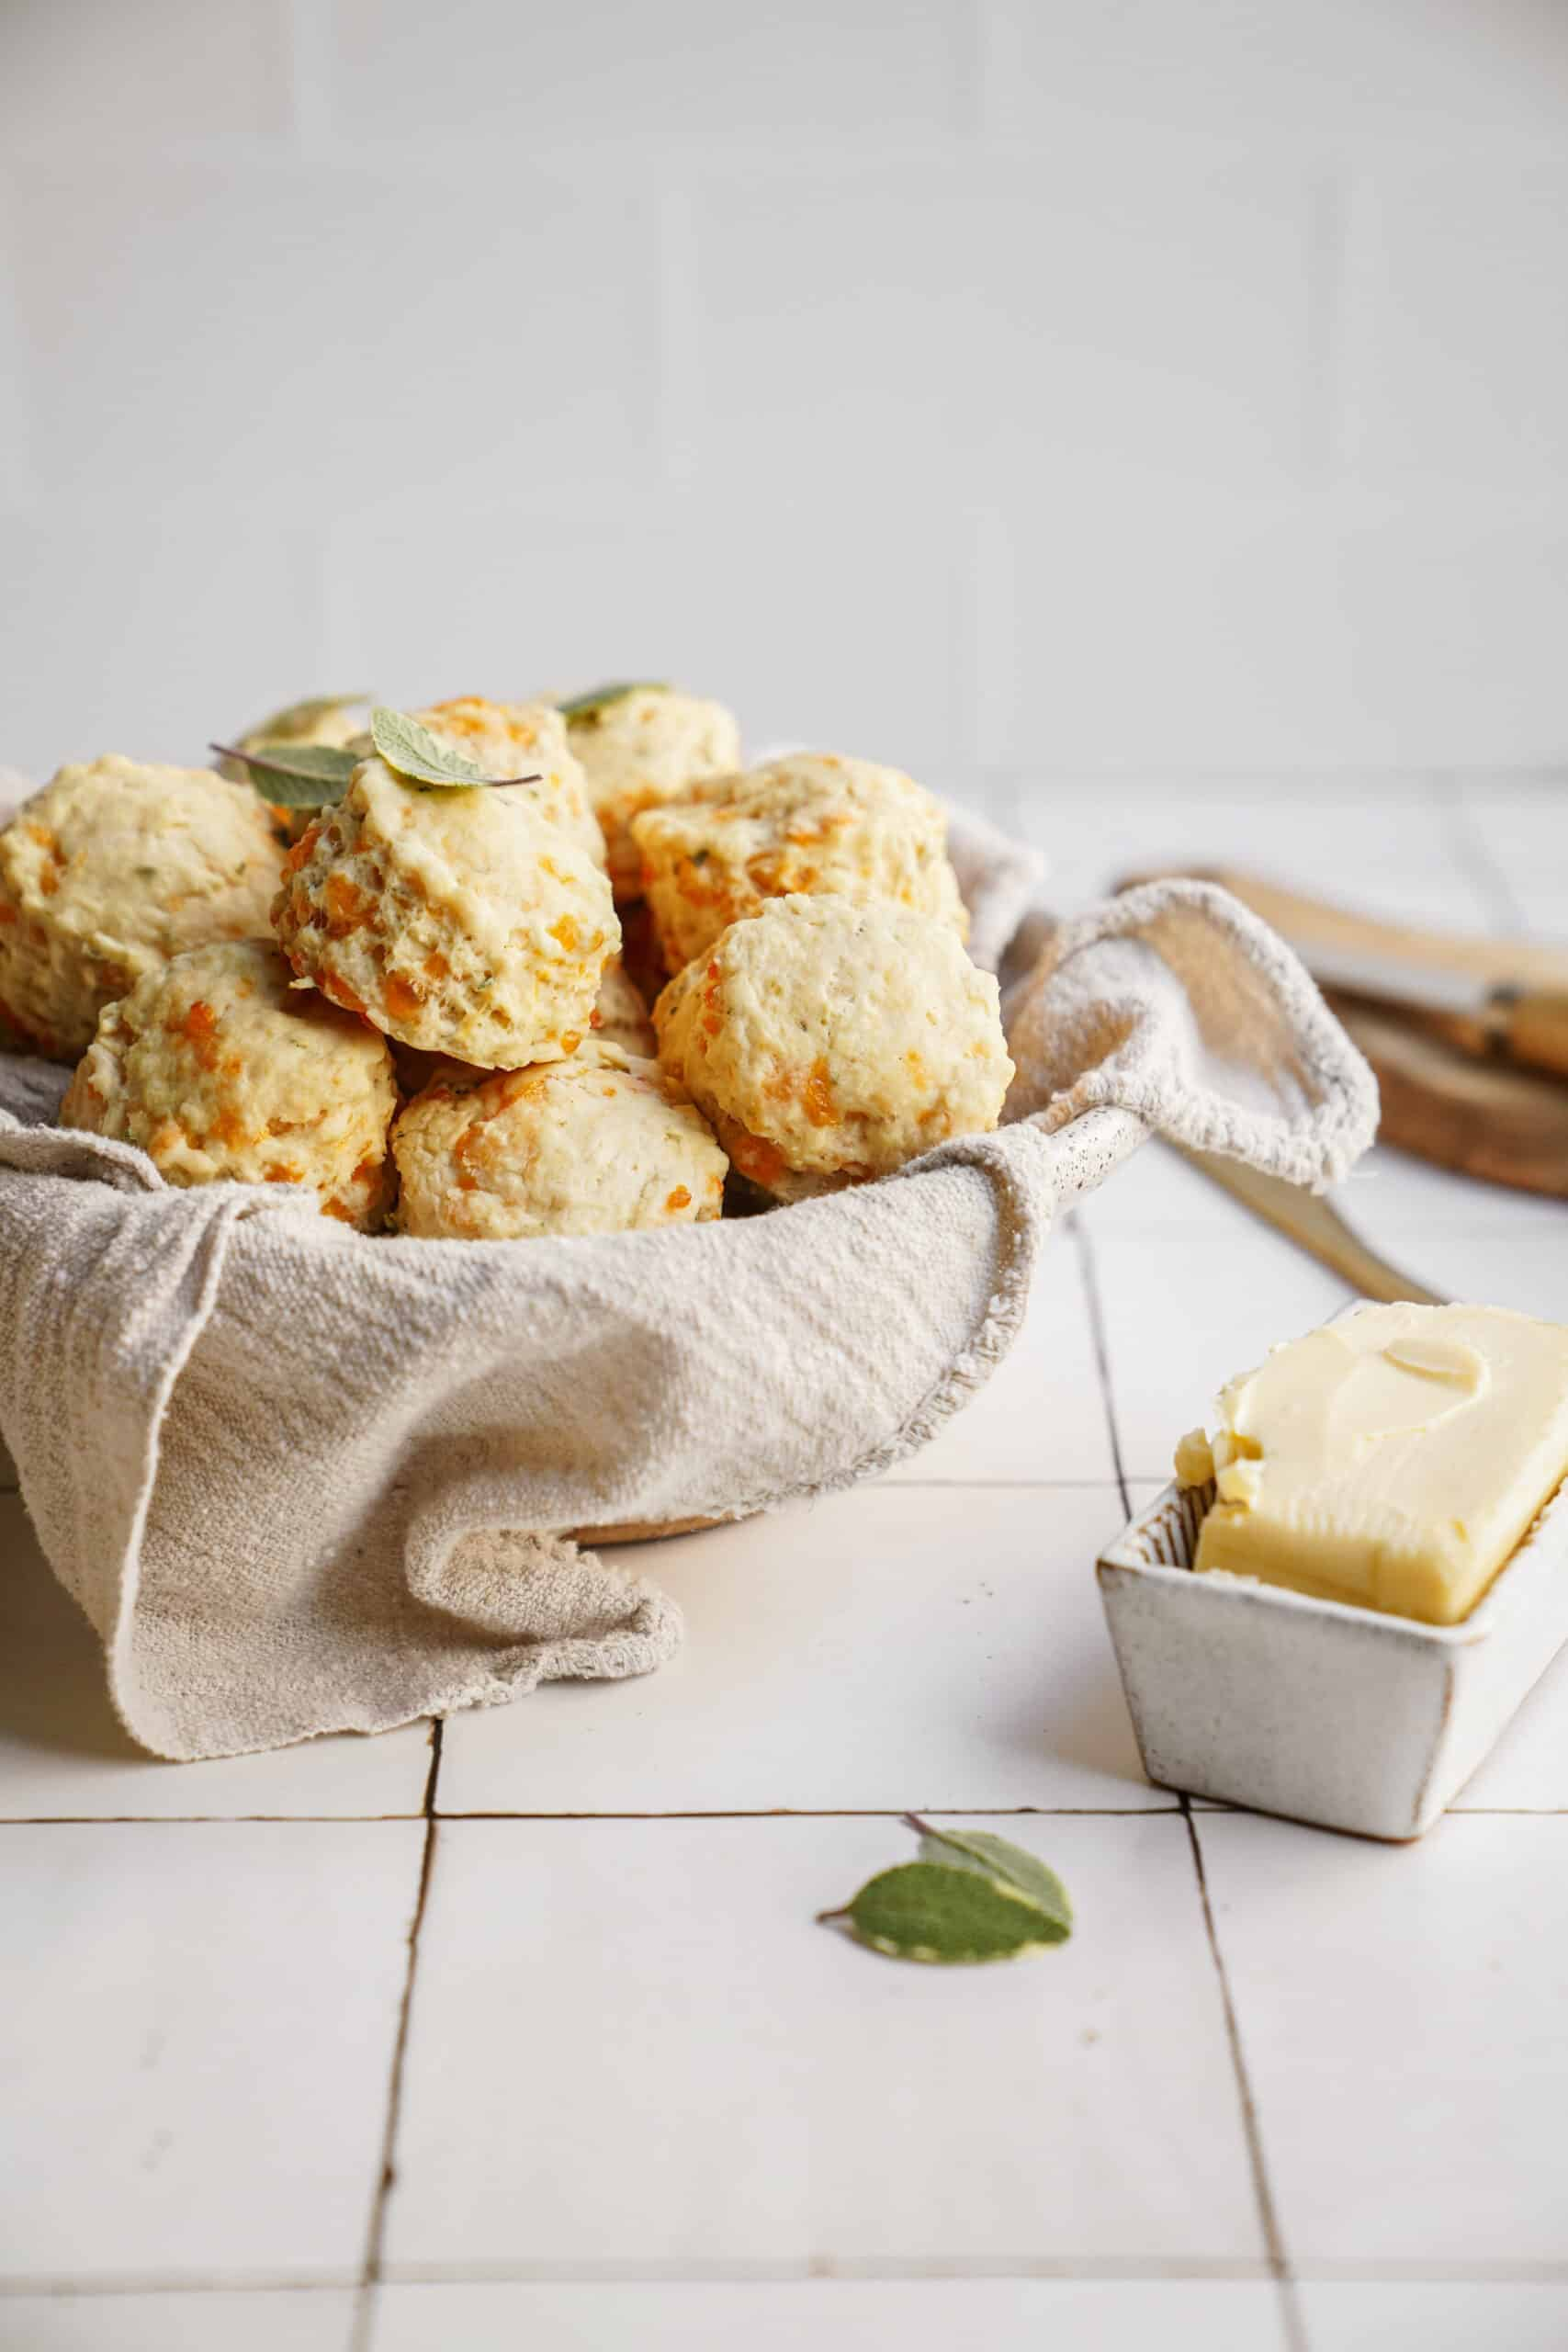 Cheddar biscuits in a basket